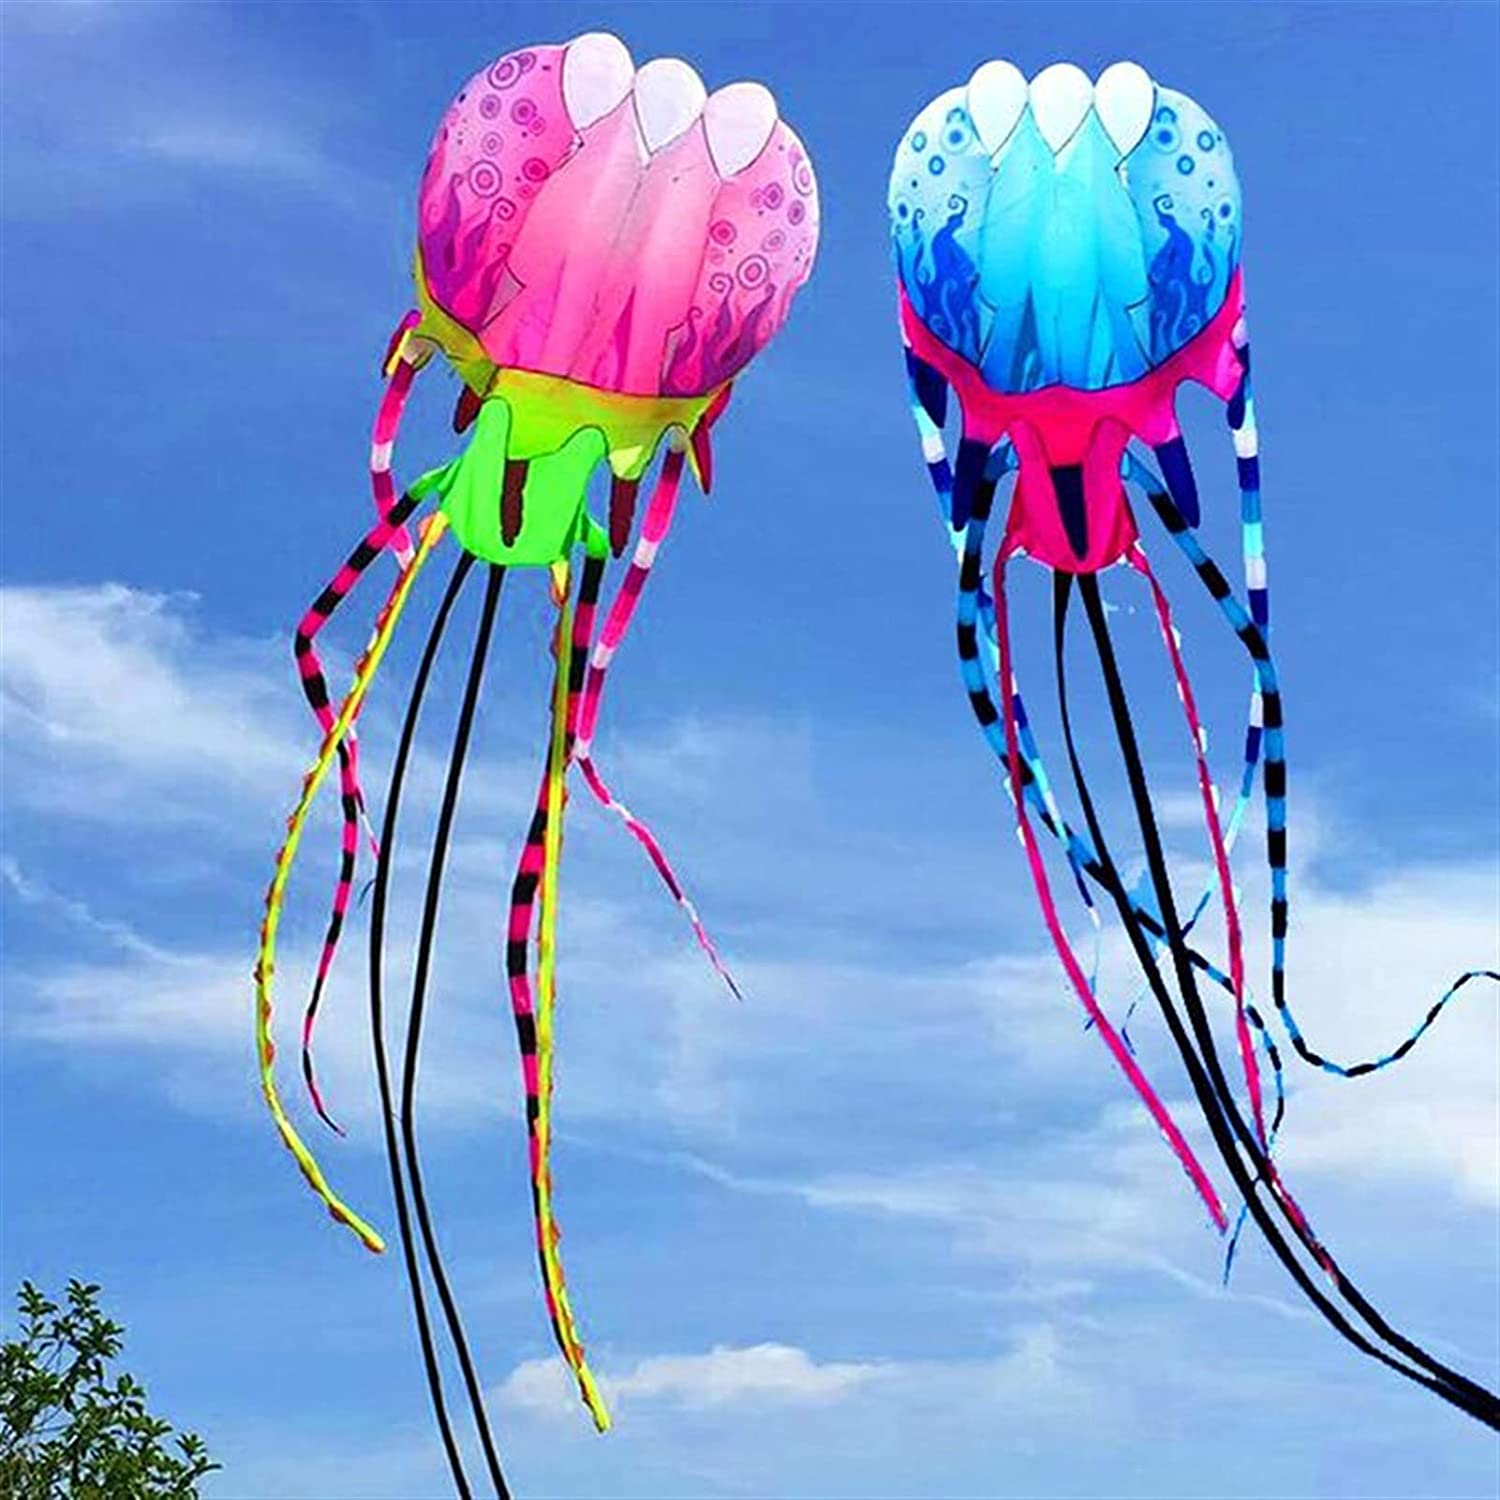 YSJJVDS Kites 2021 autumn and winter new Large Jellyfish Kite Soft for Fly Adults Max 69% OFF Reel